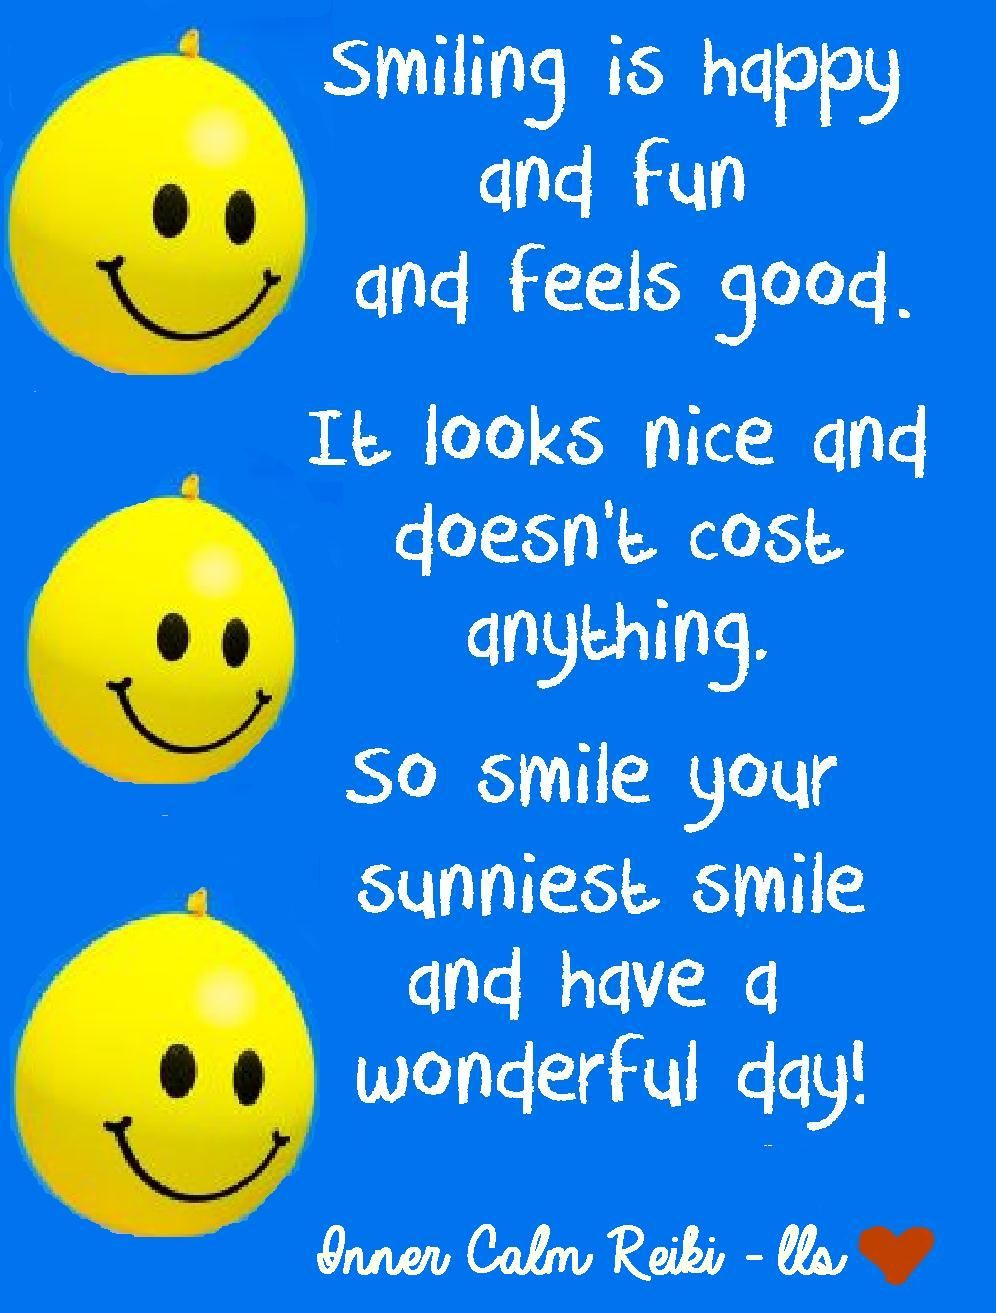 When I Was 9 Years Old I Got Sick And Was Hospitalized For A Few Days A Friend Of My Mother S Brought Me A Good Morning Funny Good Morning Quotes Smile Quotes